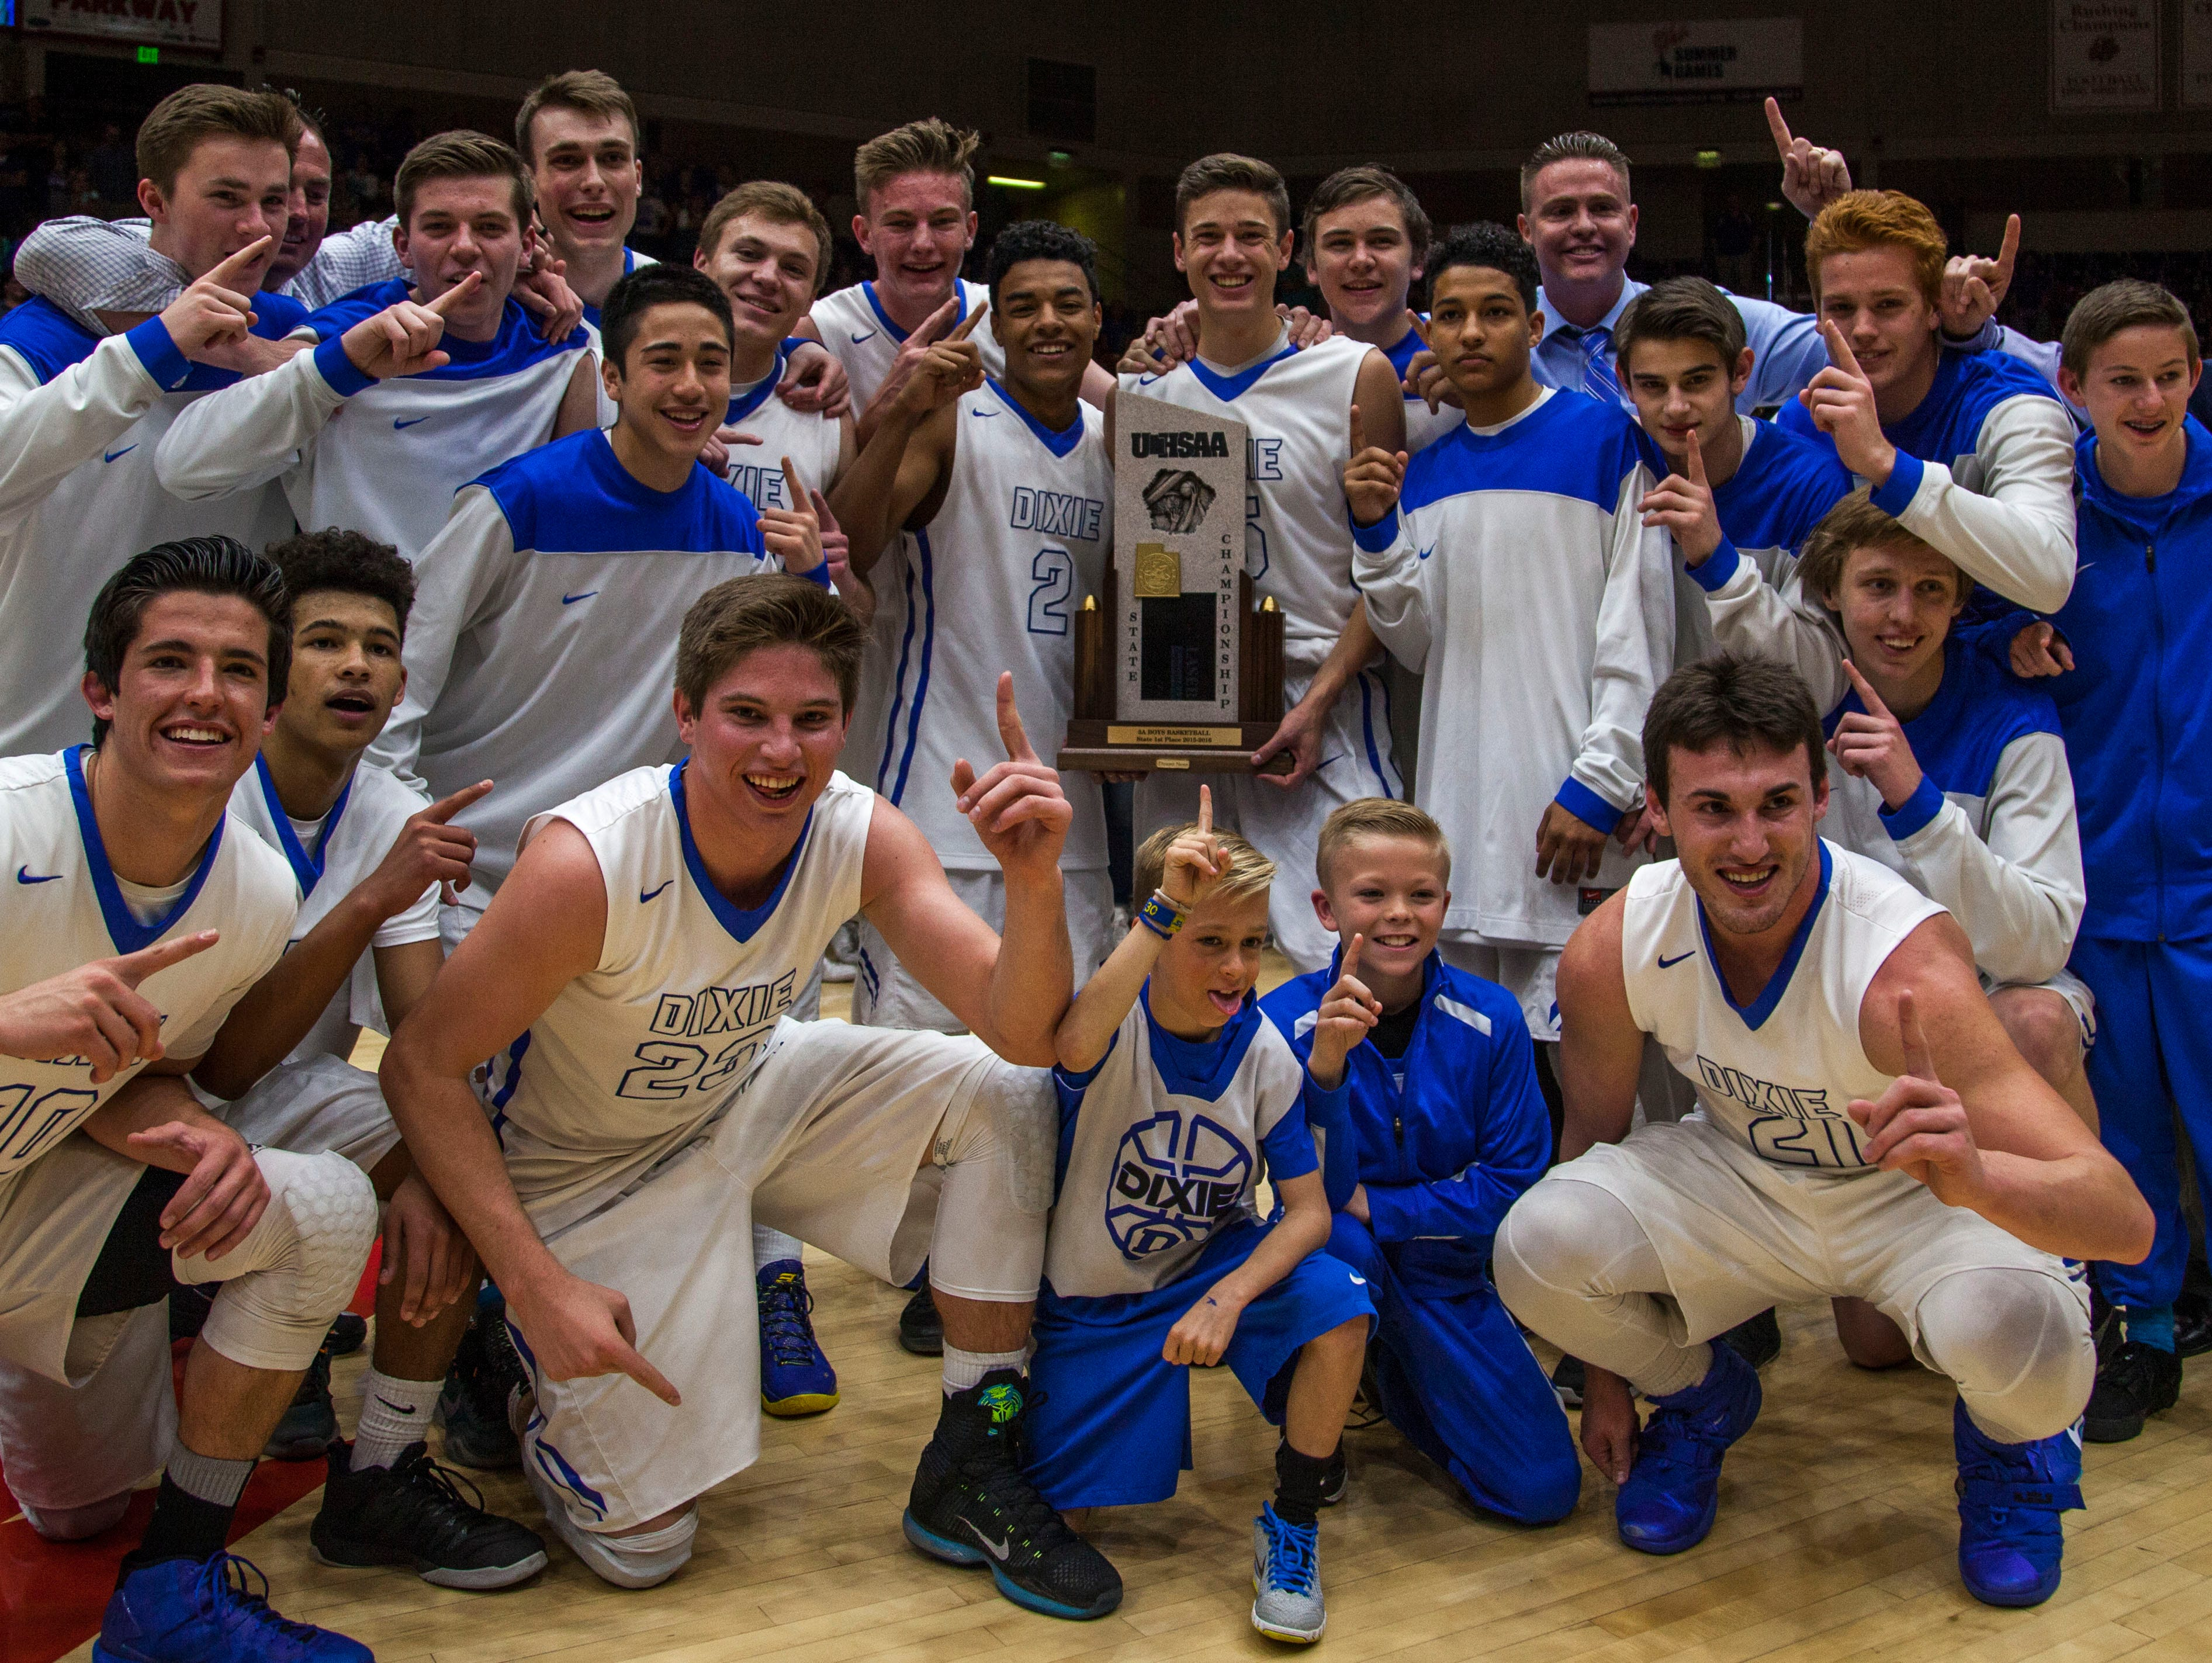 Dixie poses for a photo with the 3A championship trophy after defeating Juan Diego 65-57, Feb. 27, 2016.